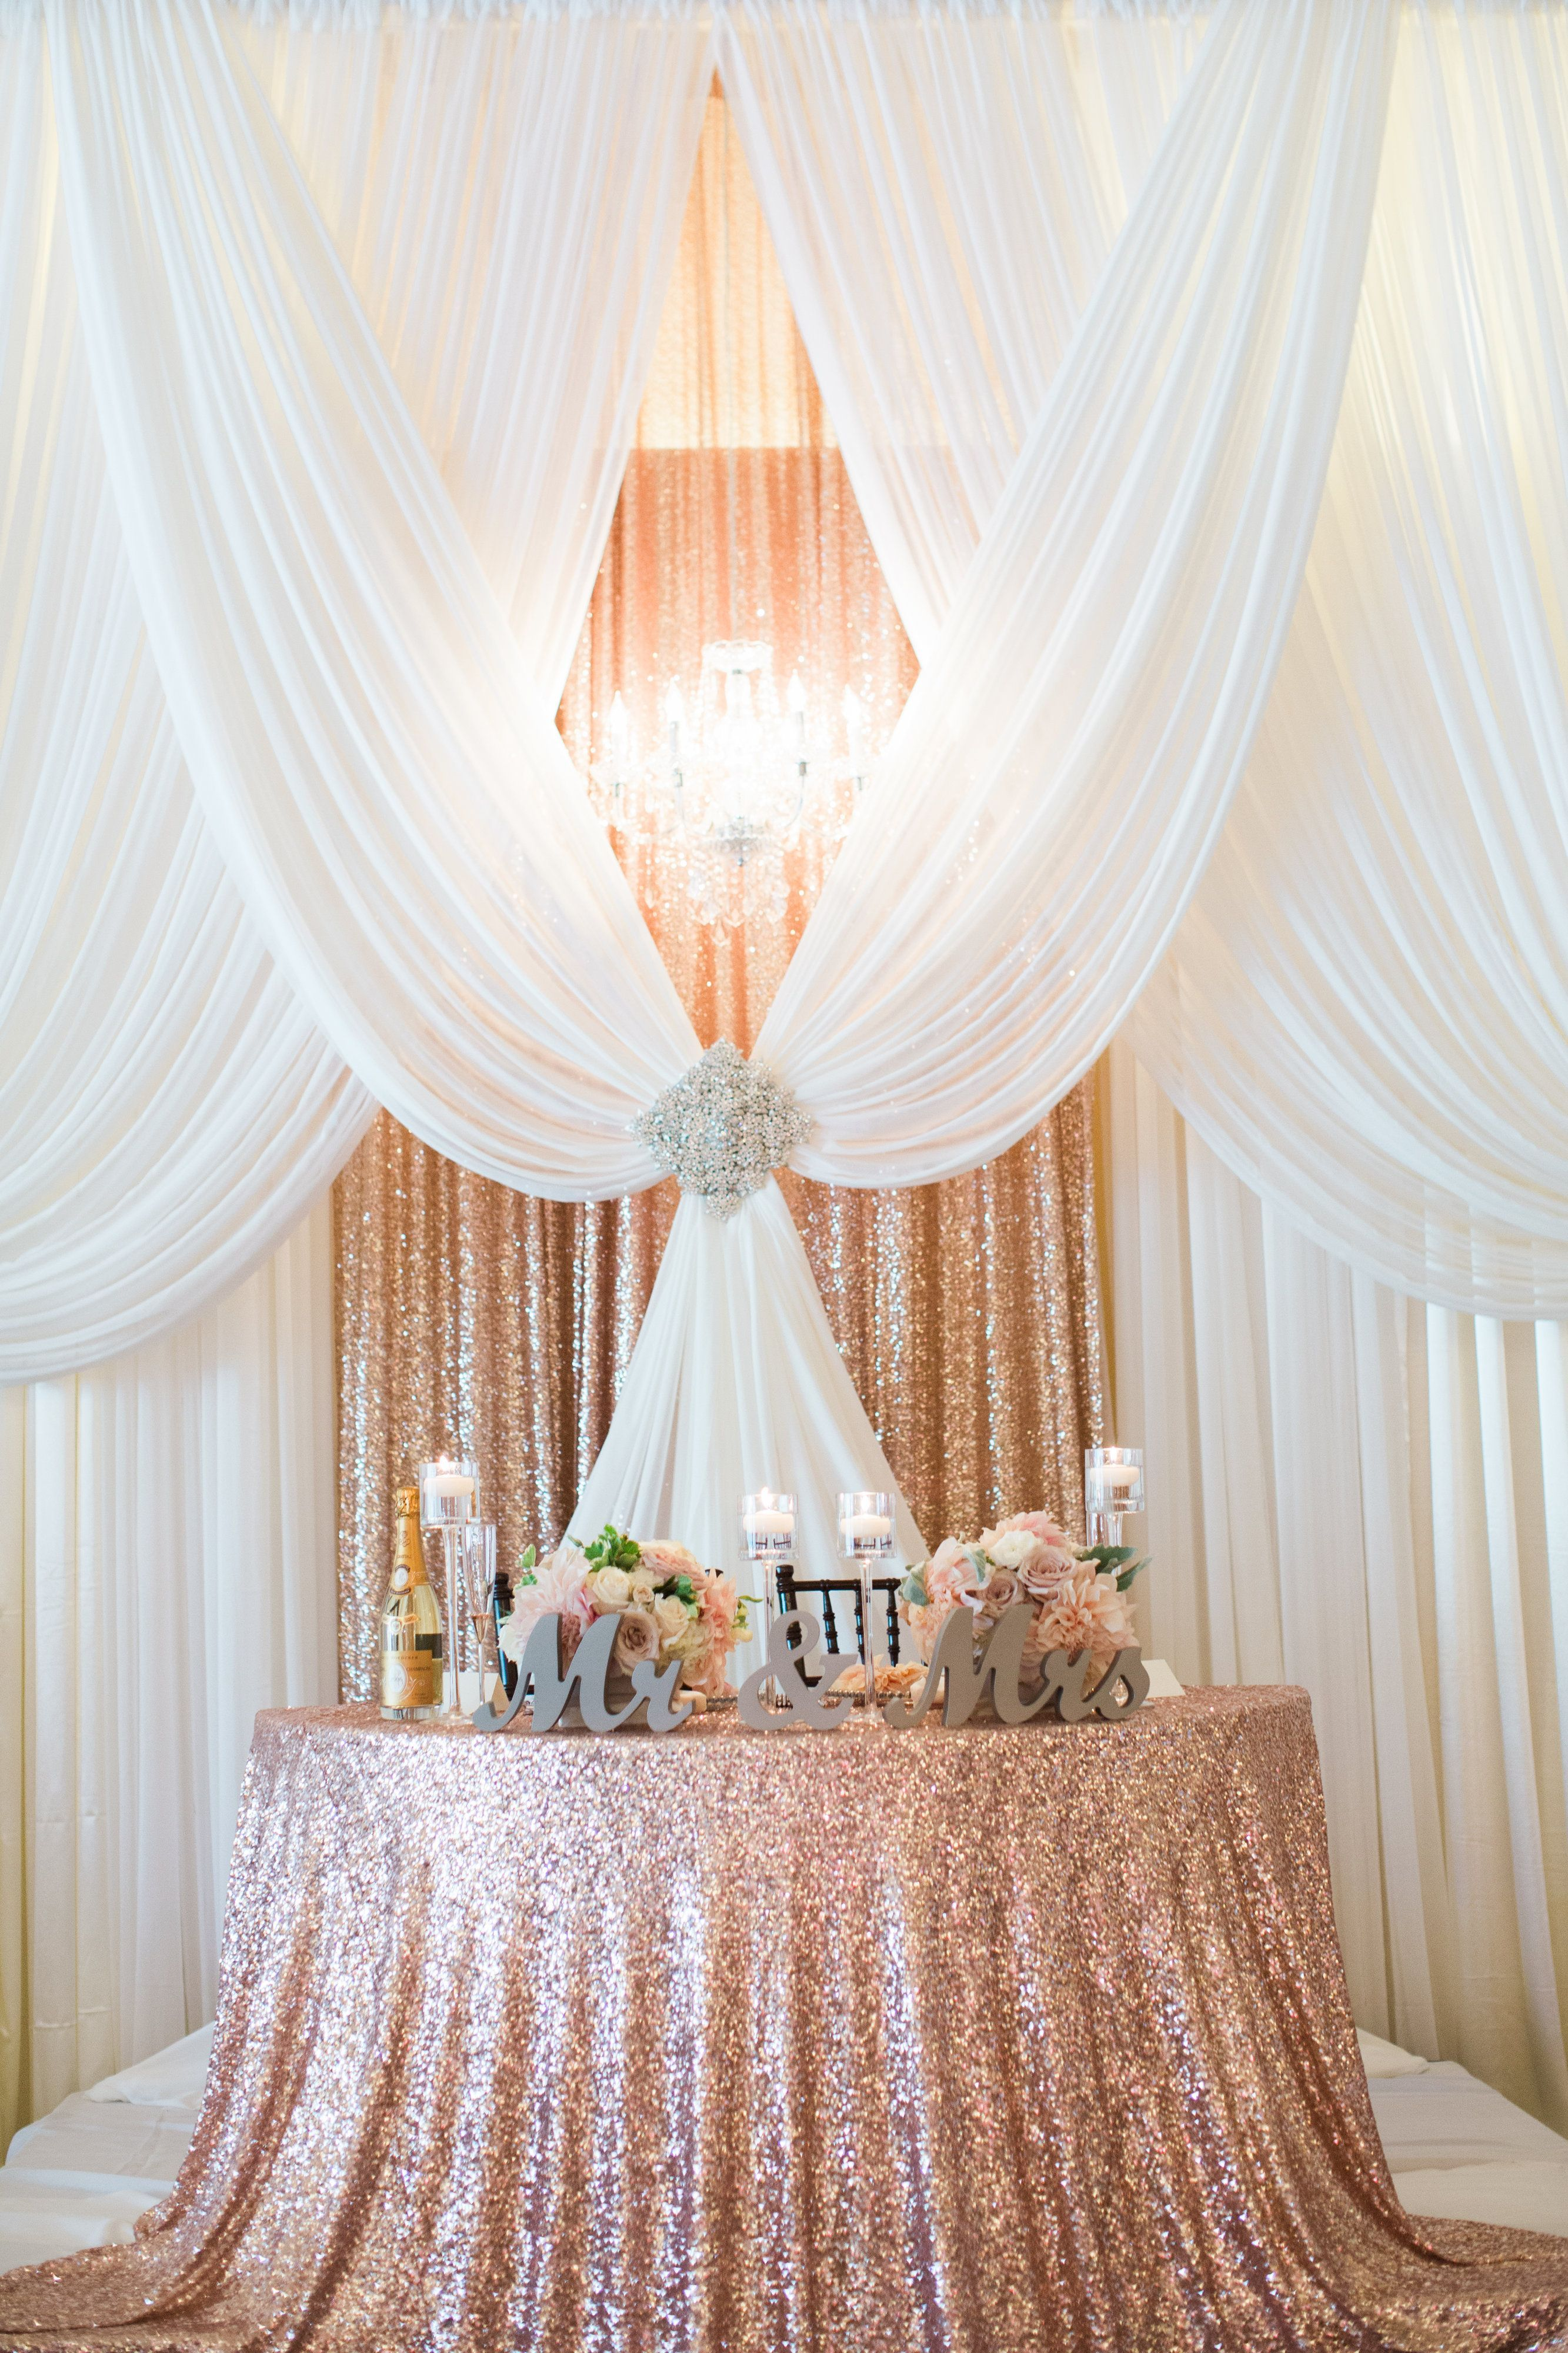 love most drapes positioned any one fabric kind cor wedding looks d be drape of for items the poles celebrations adjustable draping party on can dsc versatile or and used pipe rentals is we